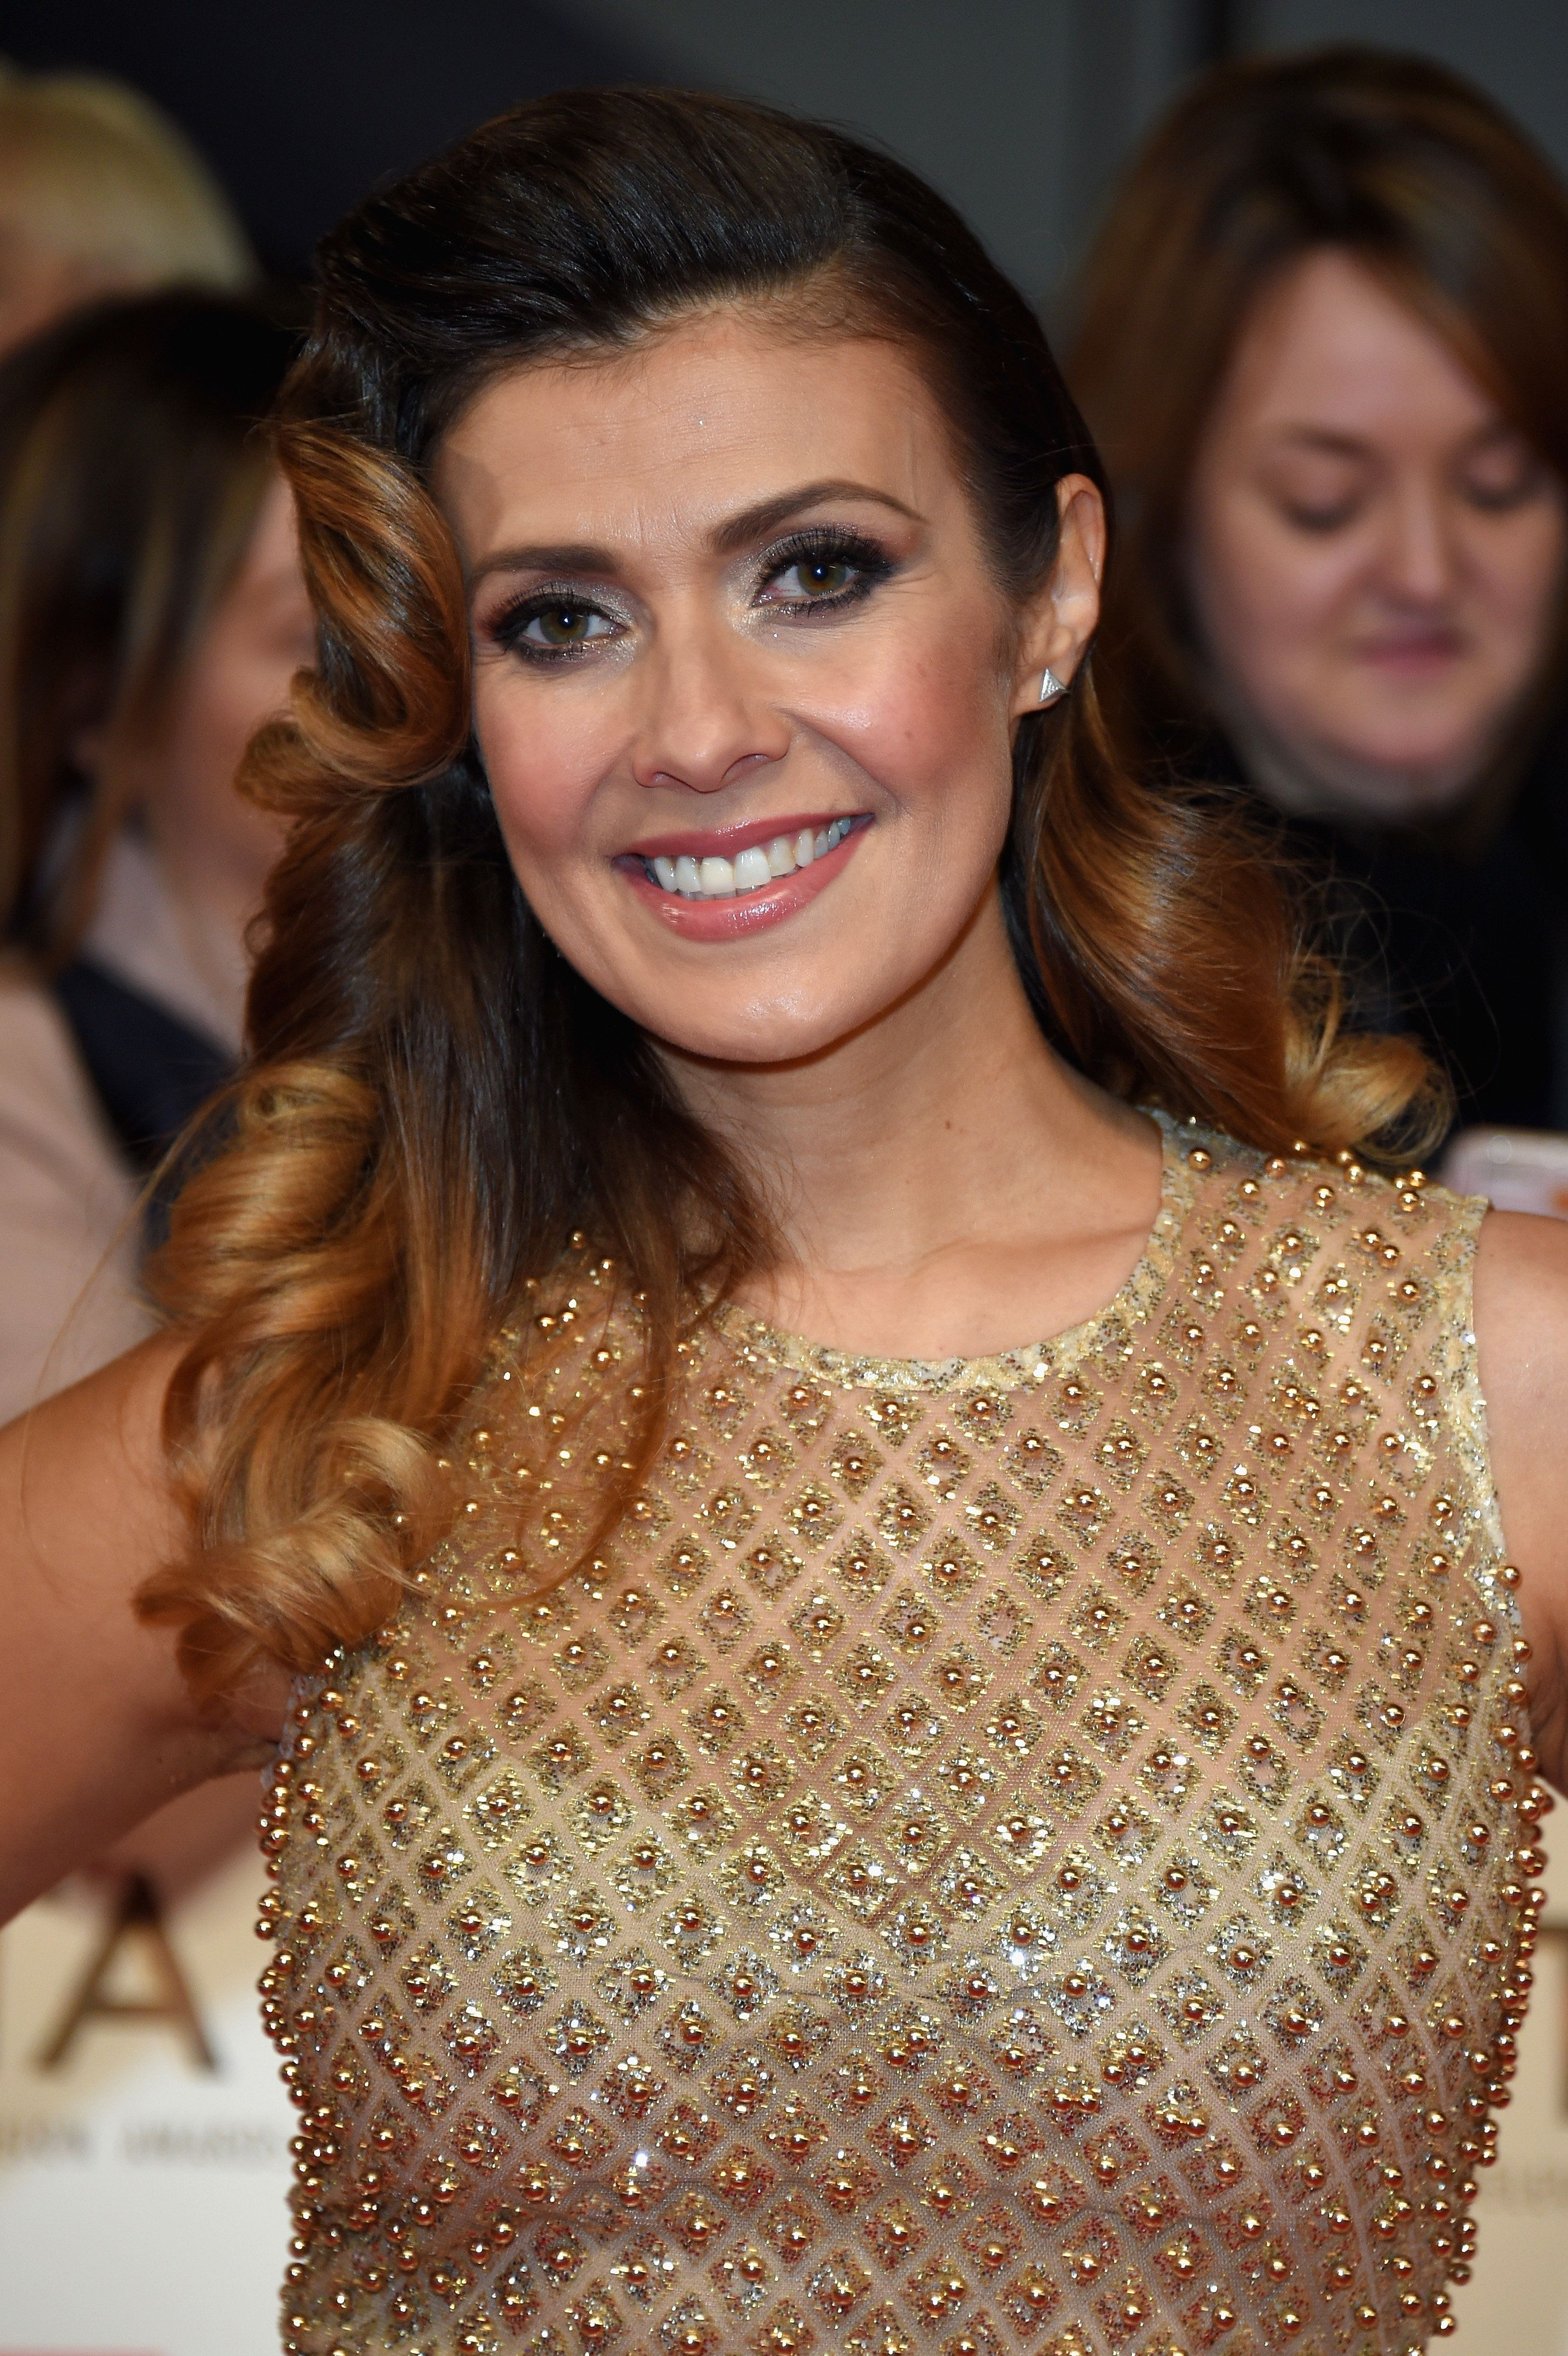 Coronation Street's Kym Marsh Is Going To Be Sticking Around In Weatherfield For Quite Some